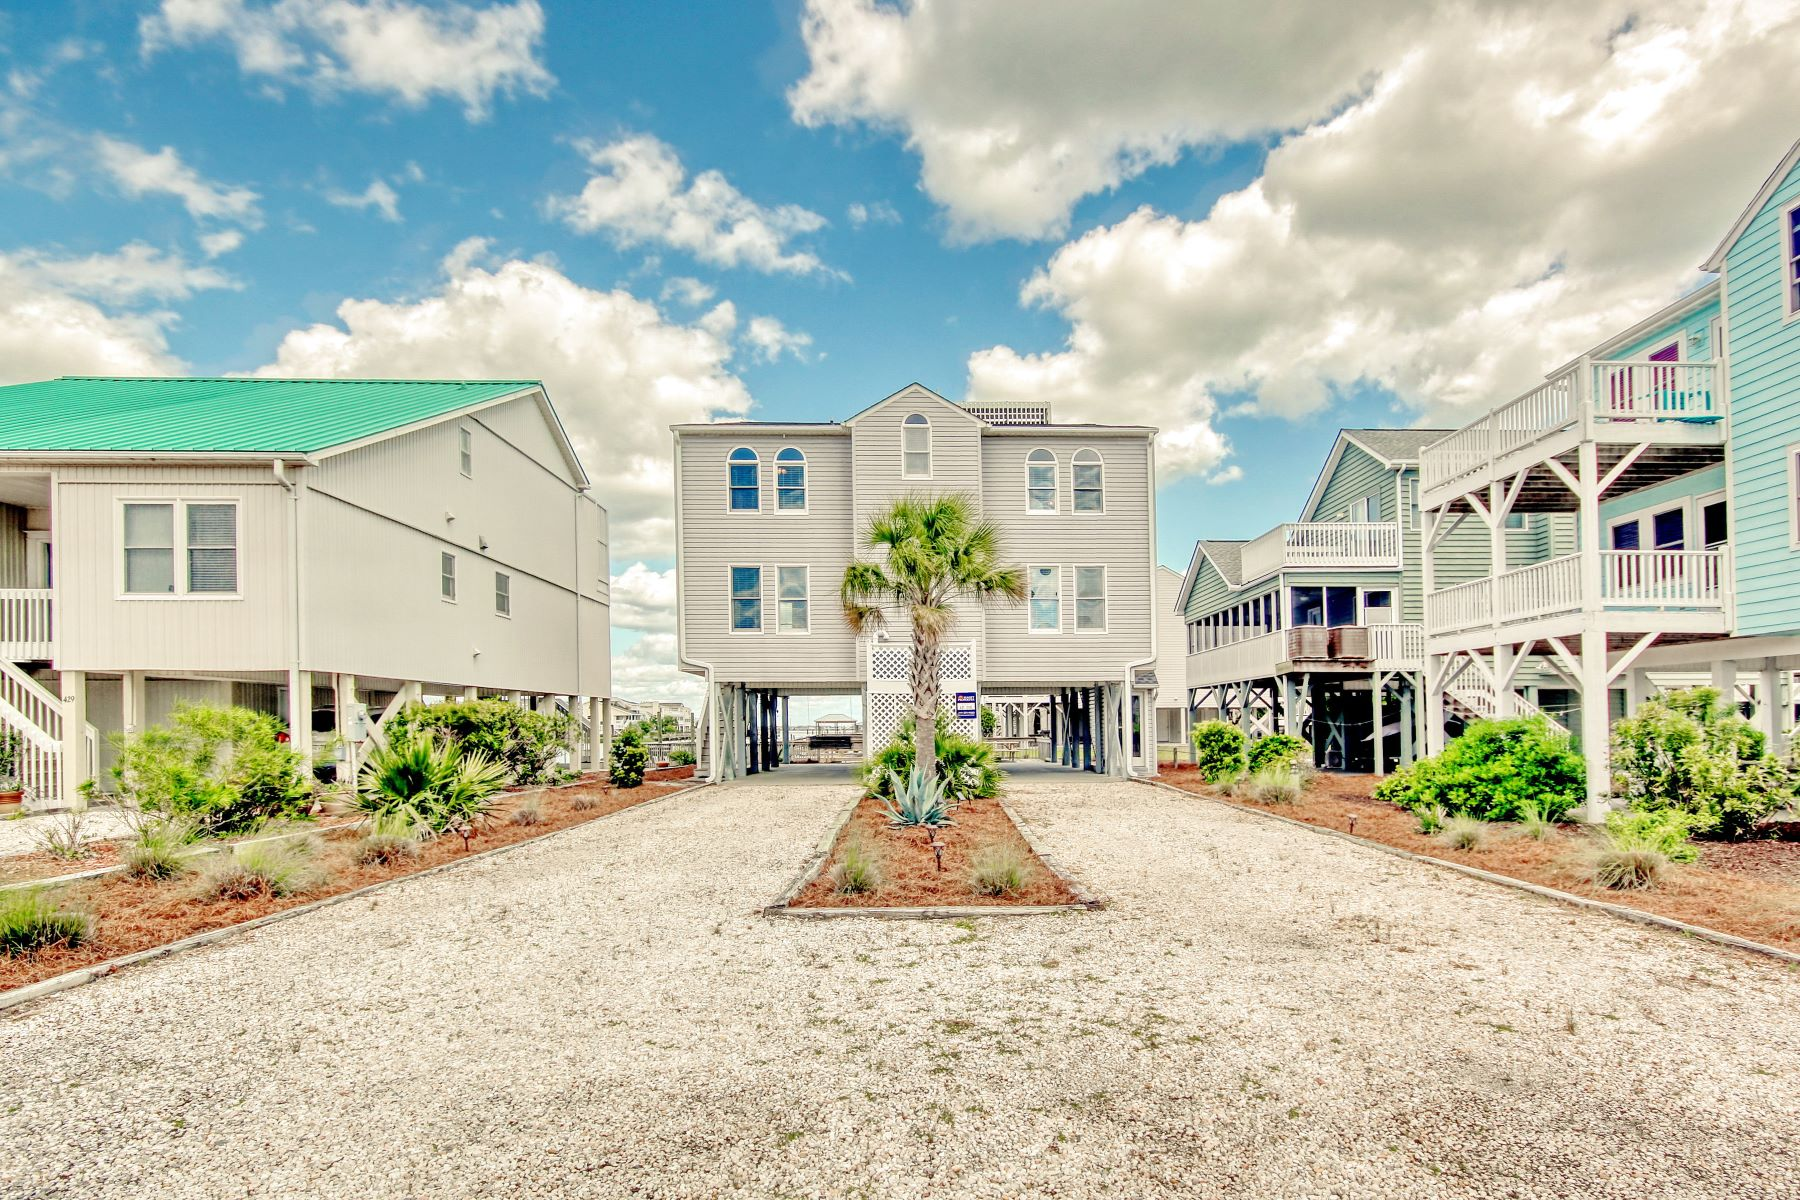 Single Family Homes for Sale at Carolina Beach House With Panoramic Views 431 Cobia Street Sunset Beach, North Carolina 28468 United States